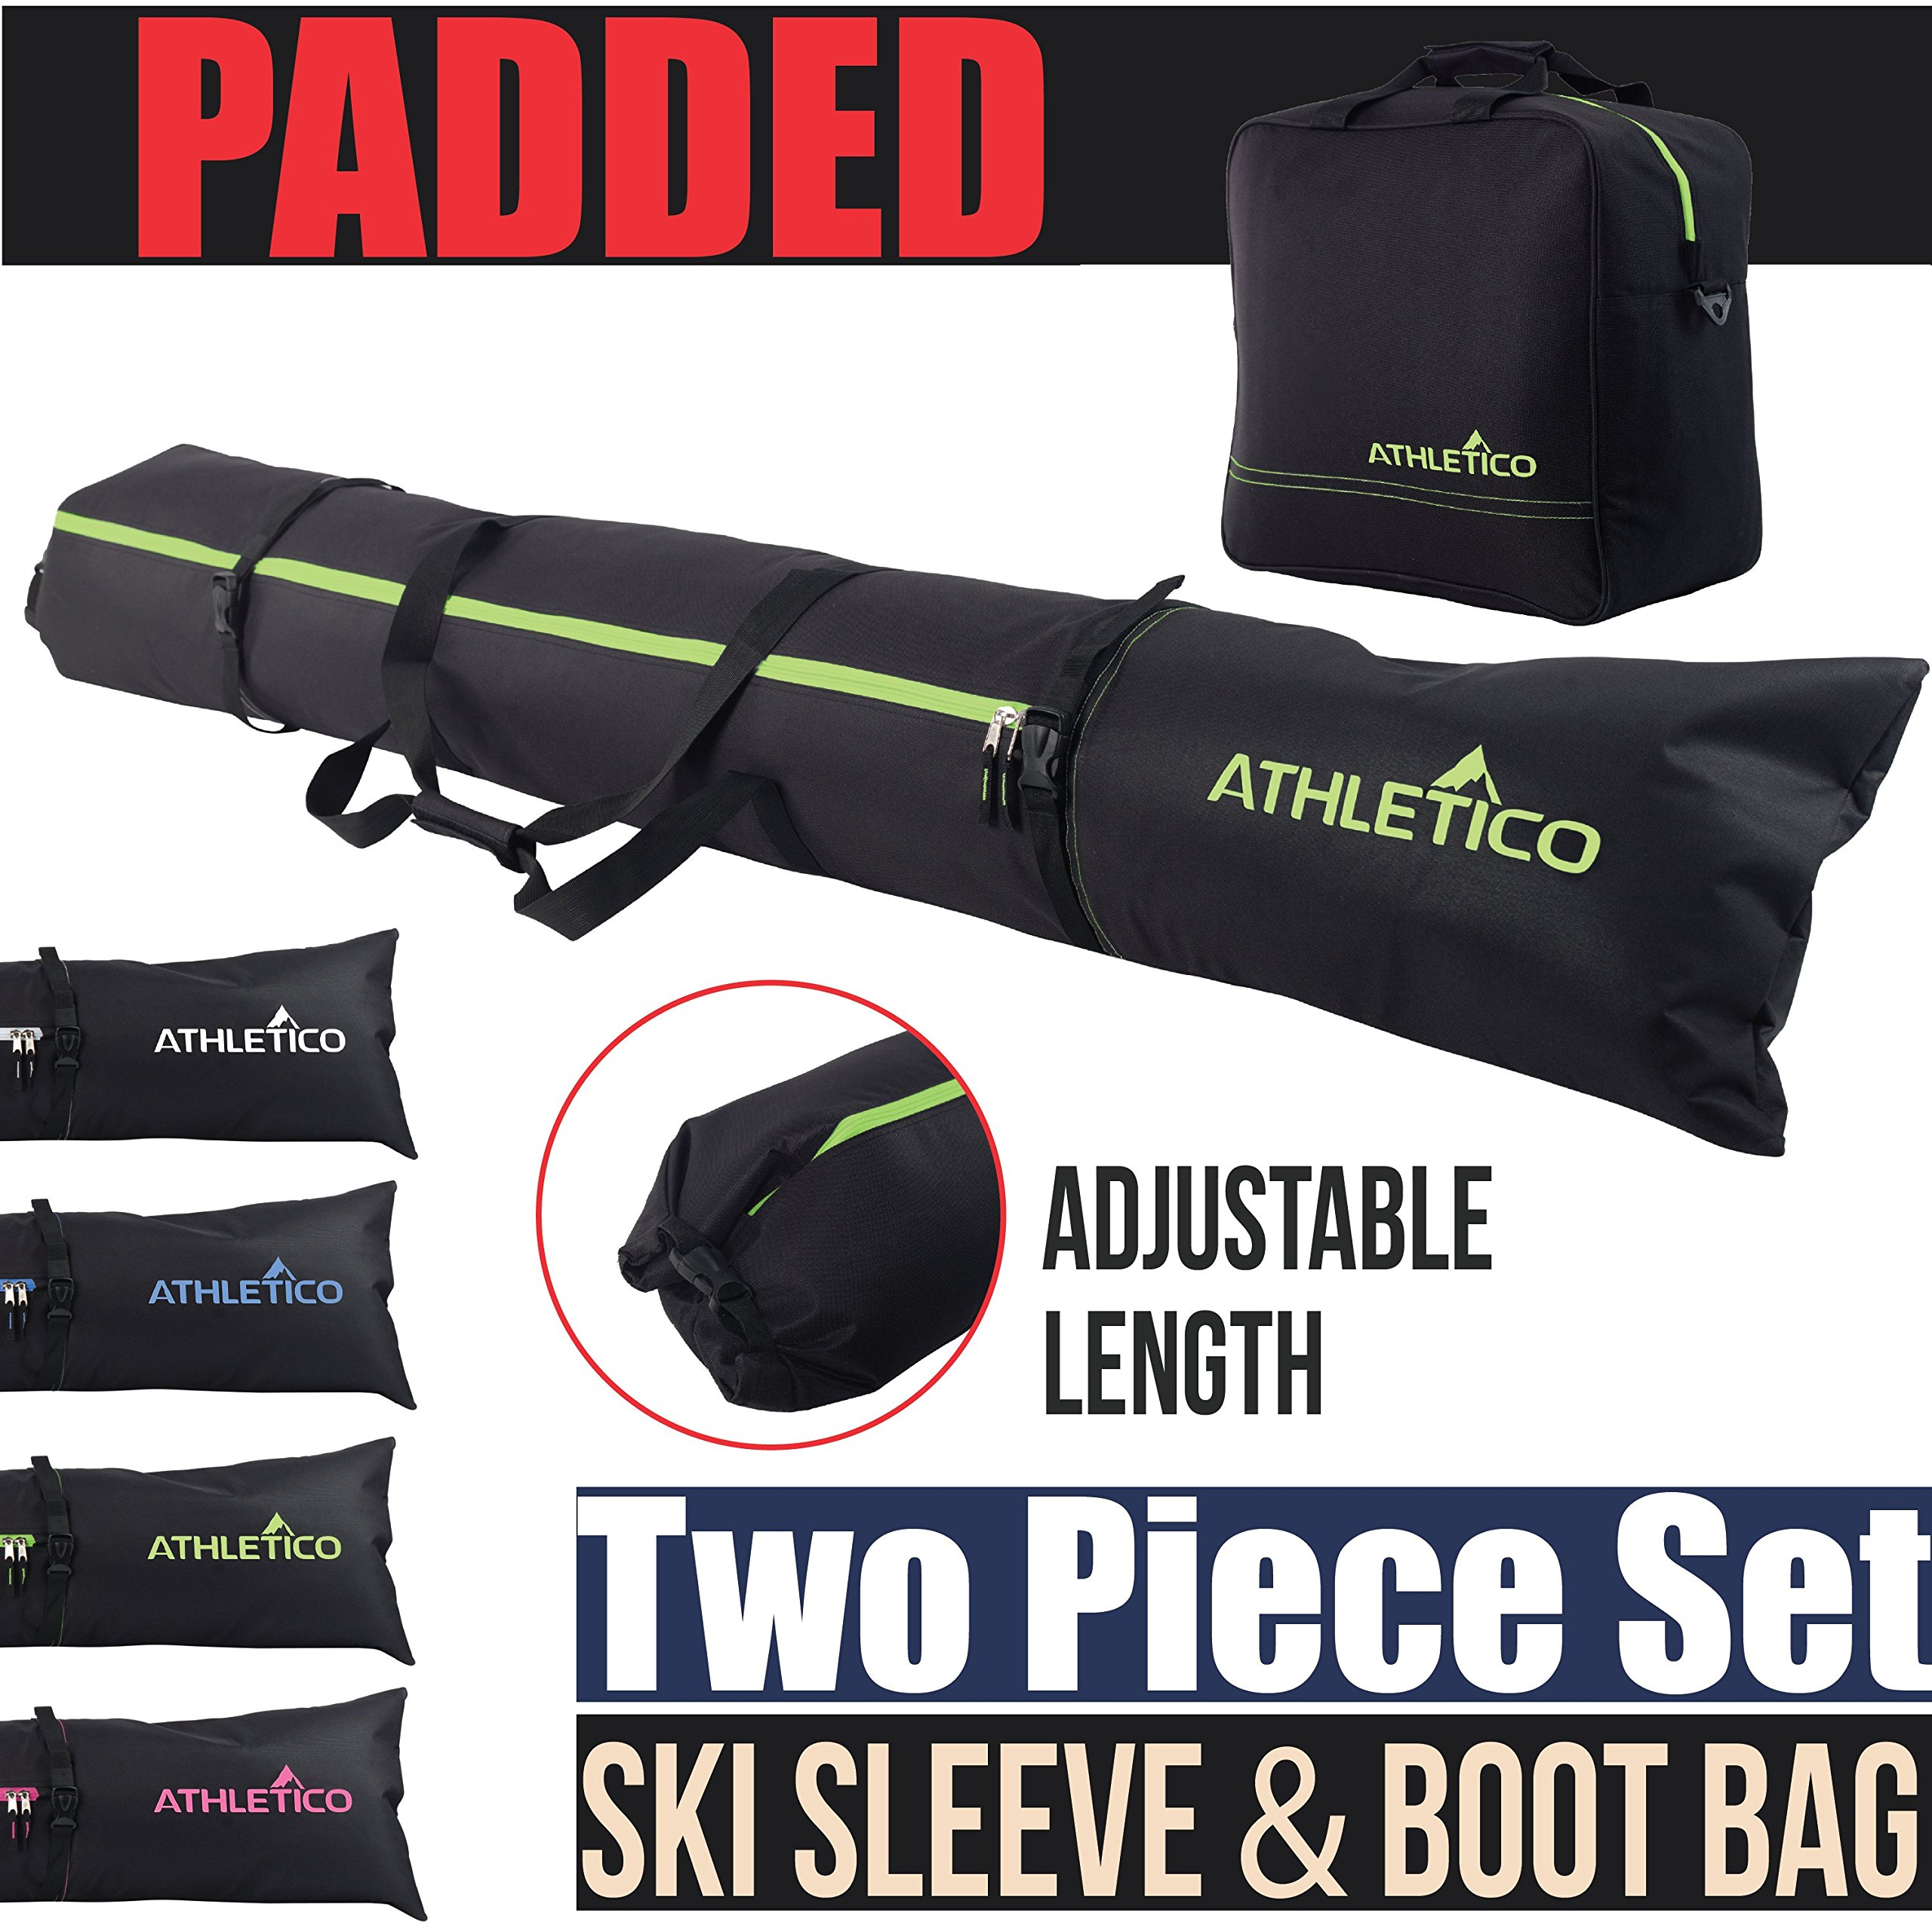 Athletico Padded Two-Piece Ski and Boot Bag Combo | Store & Transport Skis Up to 200 cm and Boots Up to Size 13 | Includes 1 Padded Ski Bag & 1 Padded Ski Boot Bag (Black with Green Trim (Padded)) by Athletico